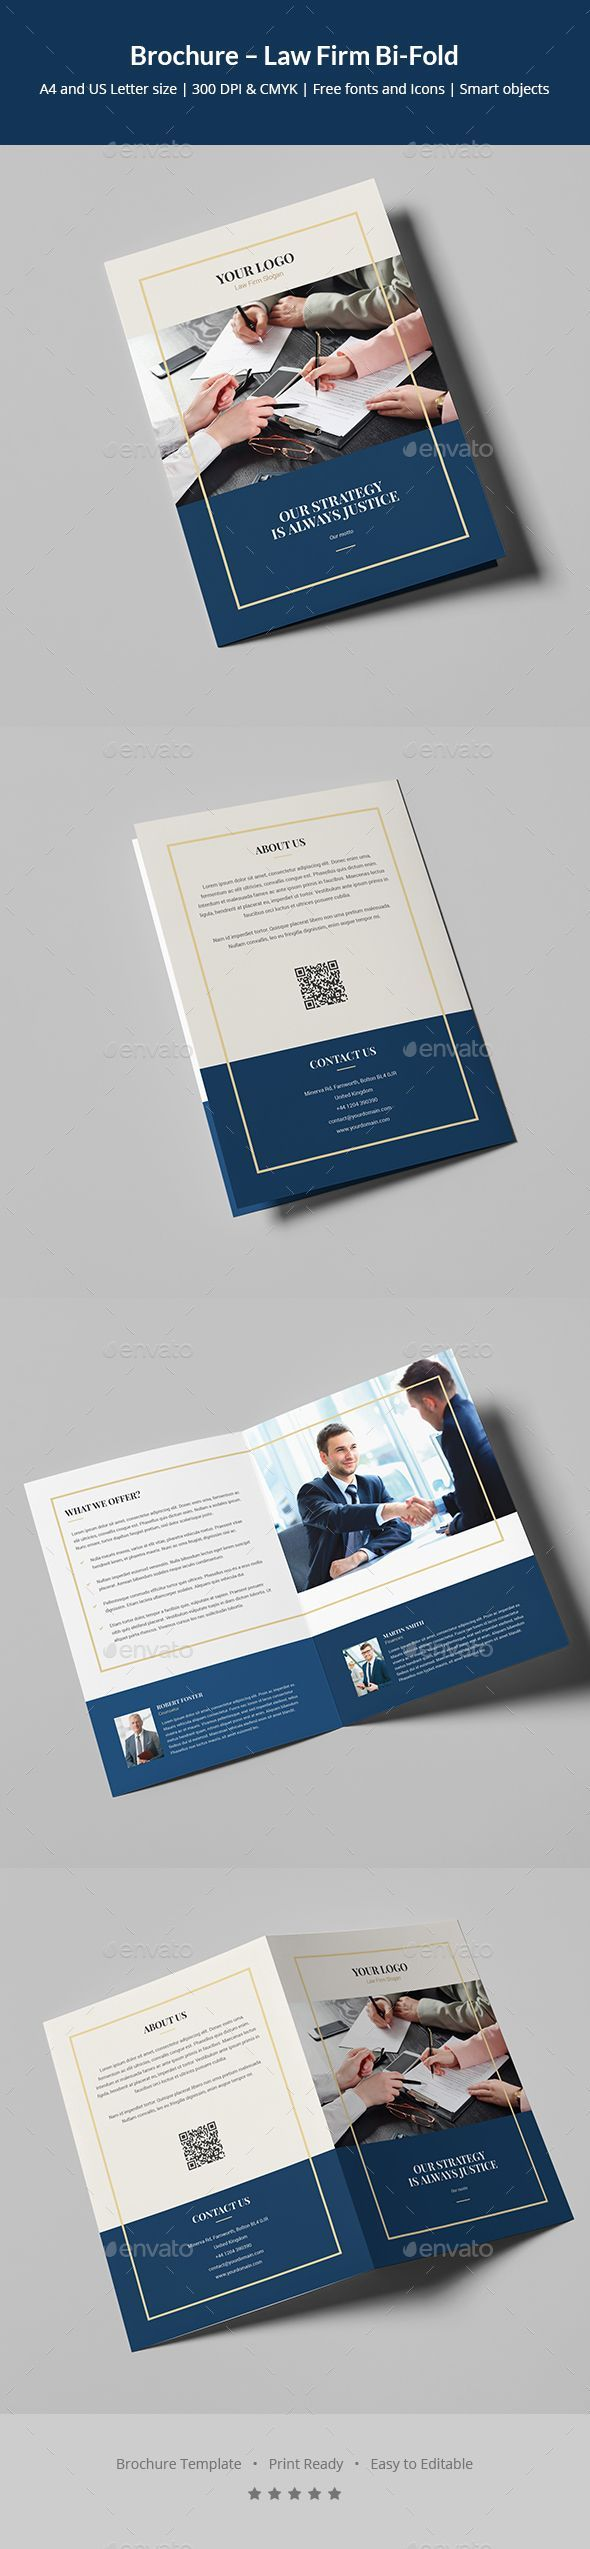 Law Firm Bi Fold Brochure Template Psd A4 And Us Letter Size